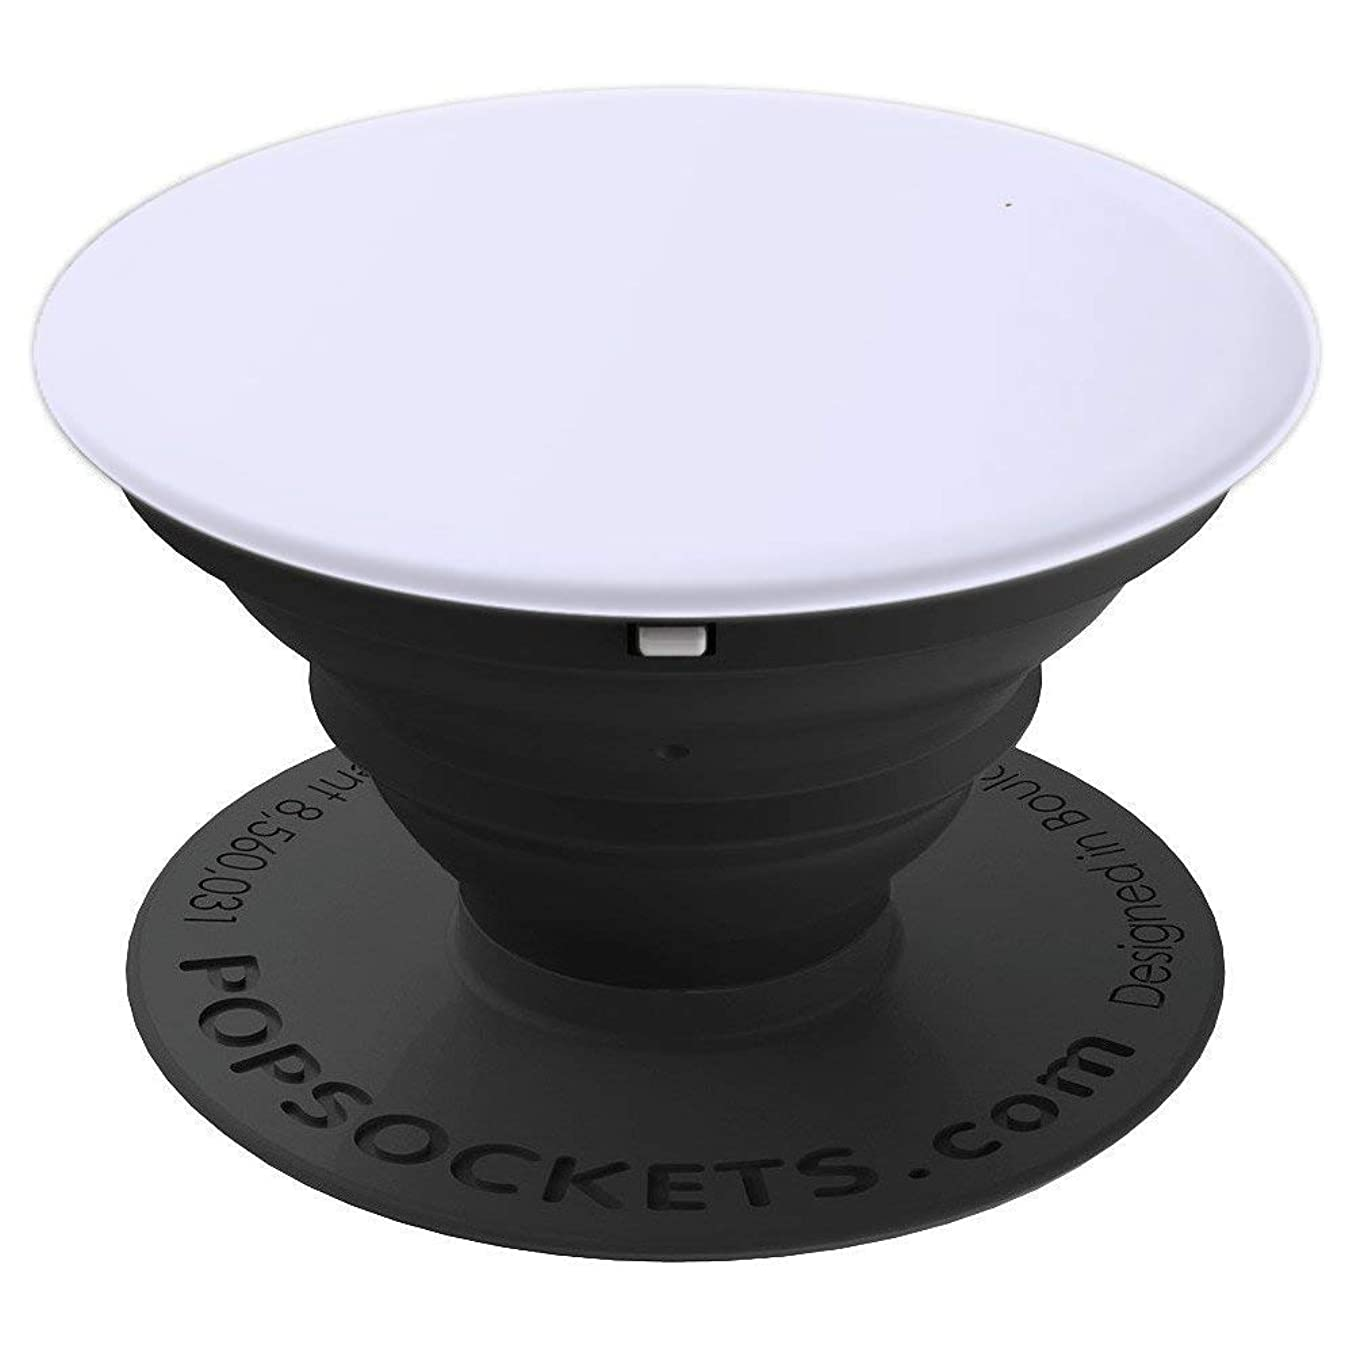 Lavendar Pastel Plain Color - PopSockets Grip and Stand for Phones and Tablets